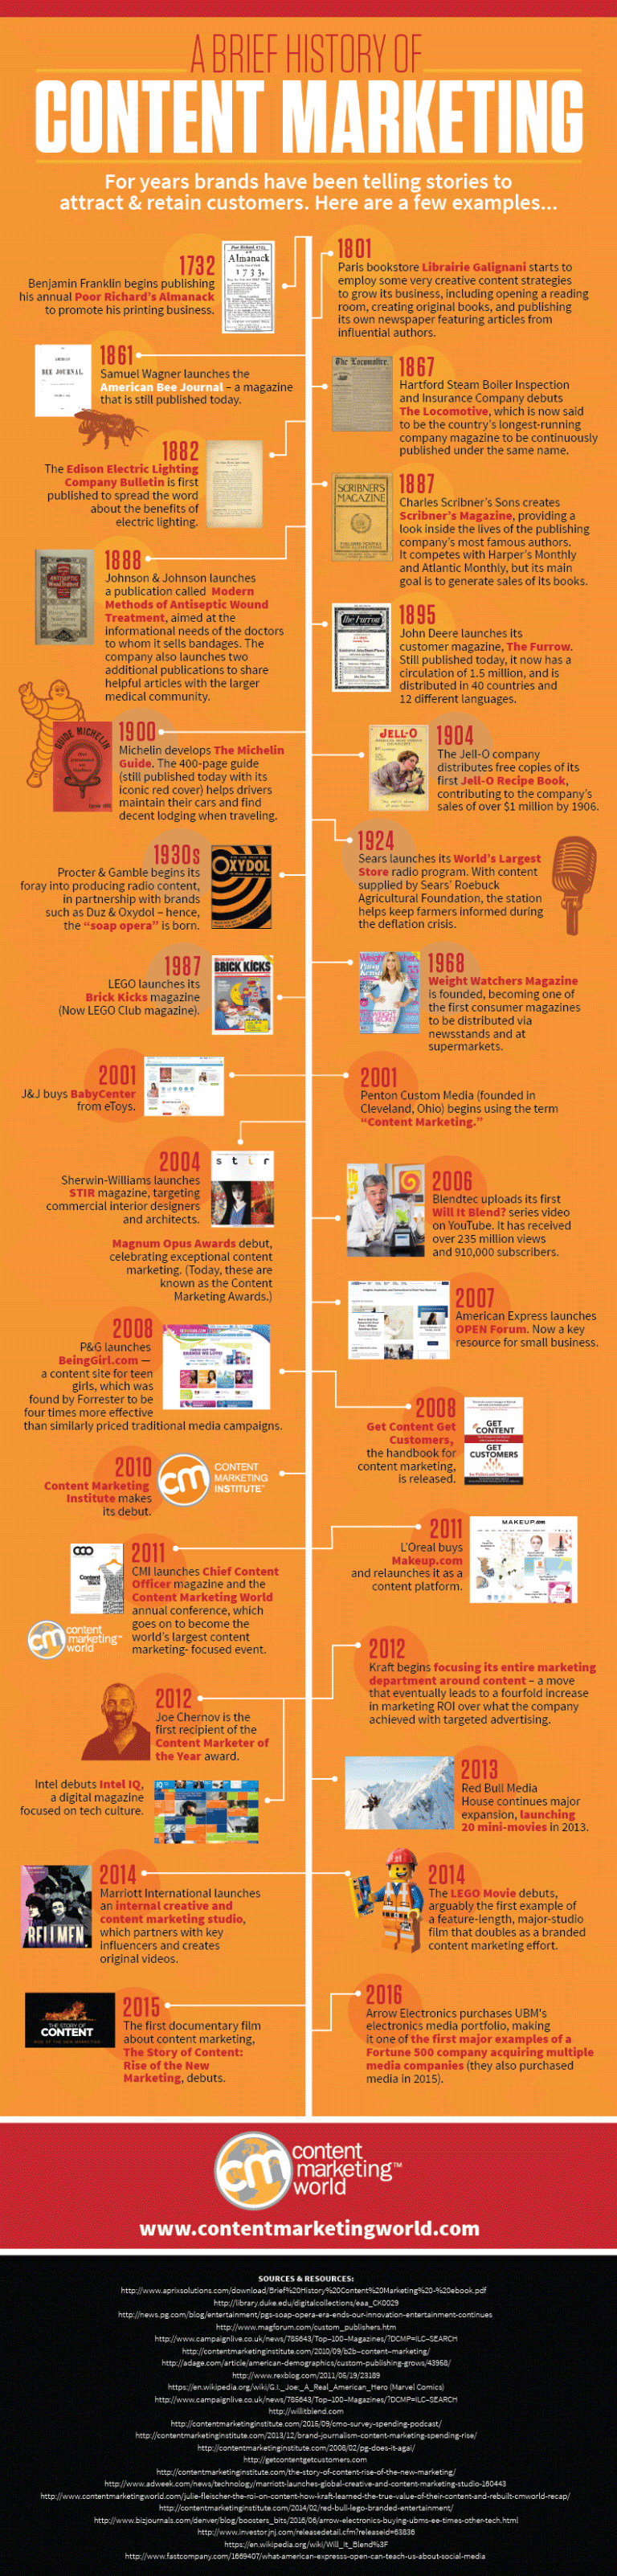 History-of-Content-Marketing-Infographic-2016_FINAL-768x3206